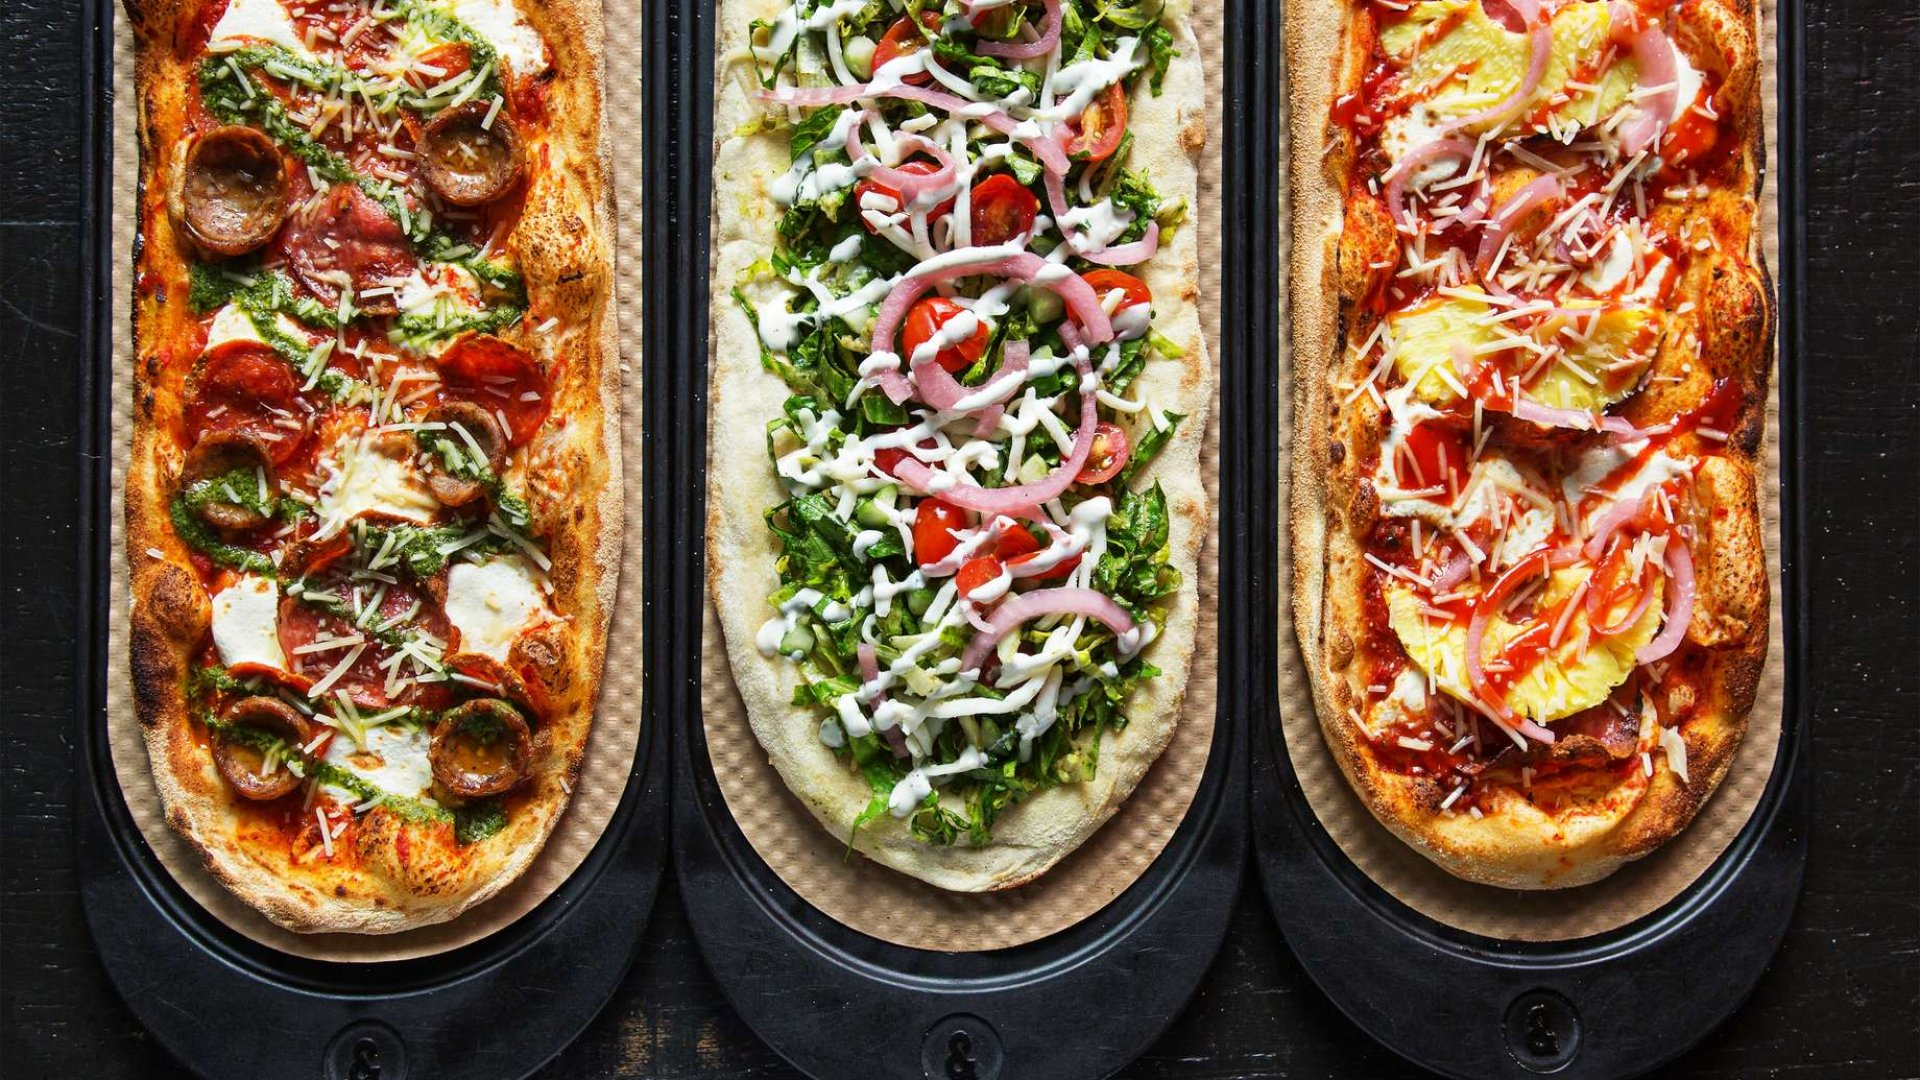 3 Powerful Lessons From the Entrepreneur Who Gave Away 30,000 Pizzas During the Government Shutdown